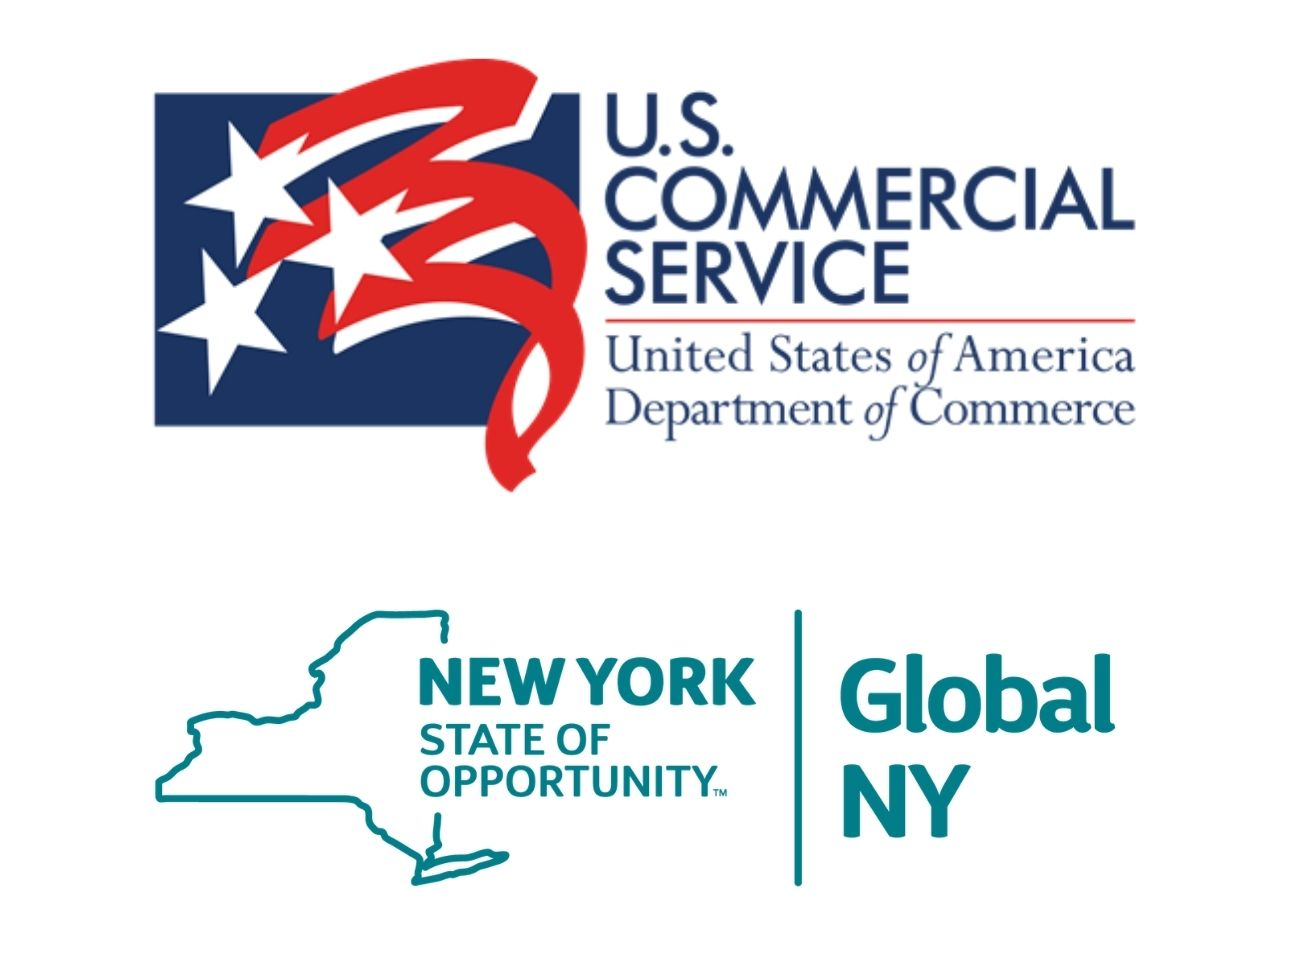 USDOC Commercial Service Offices logo and Global NY logo